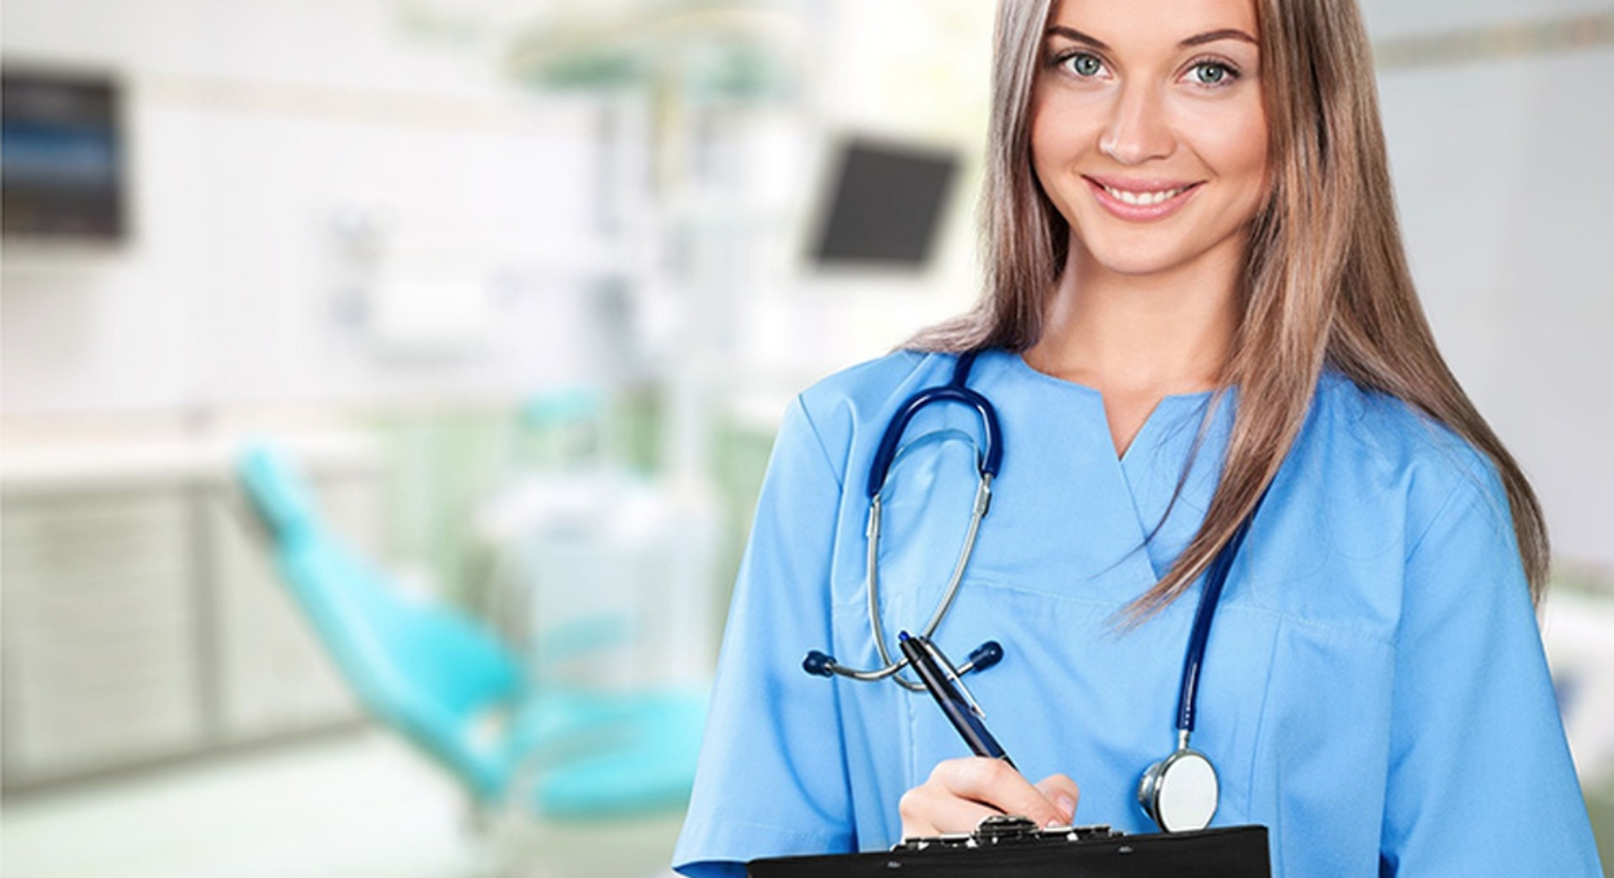 Nursing Is A Profession Within The Health Care Sector Focused On